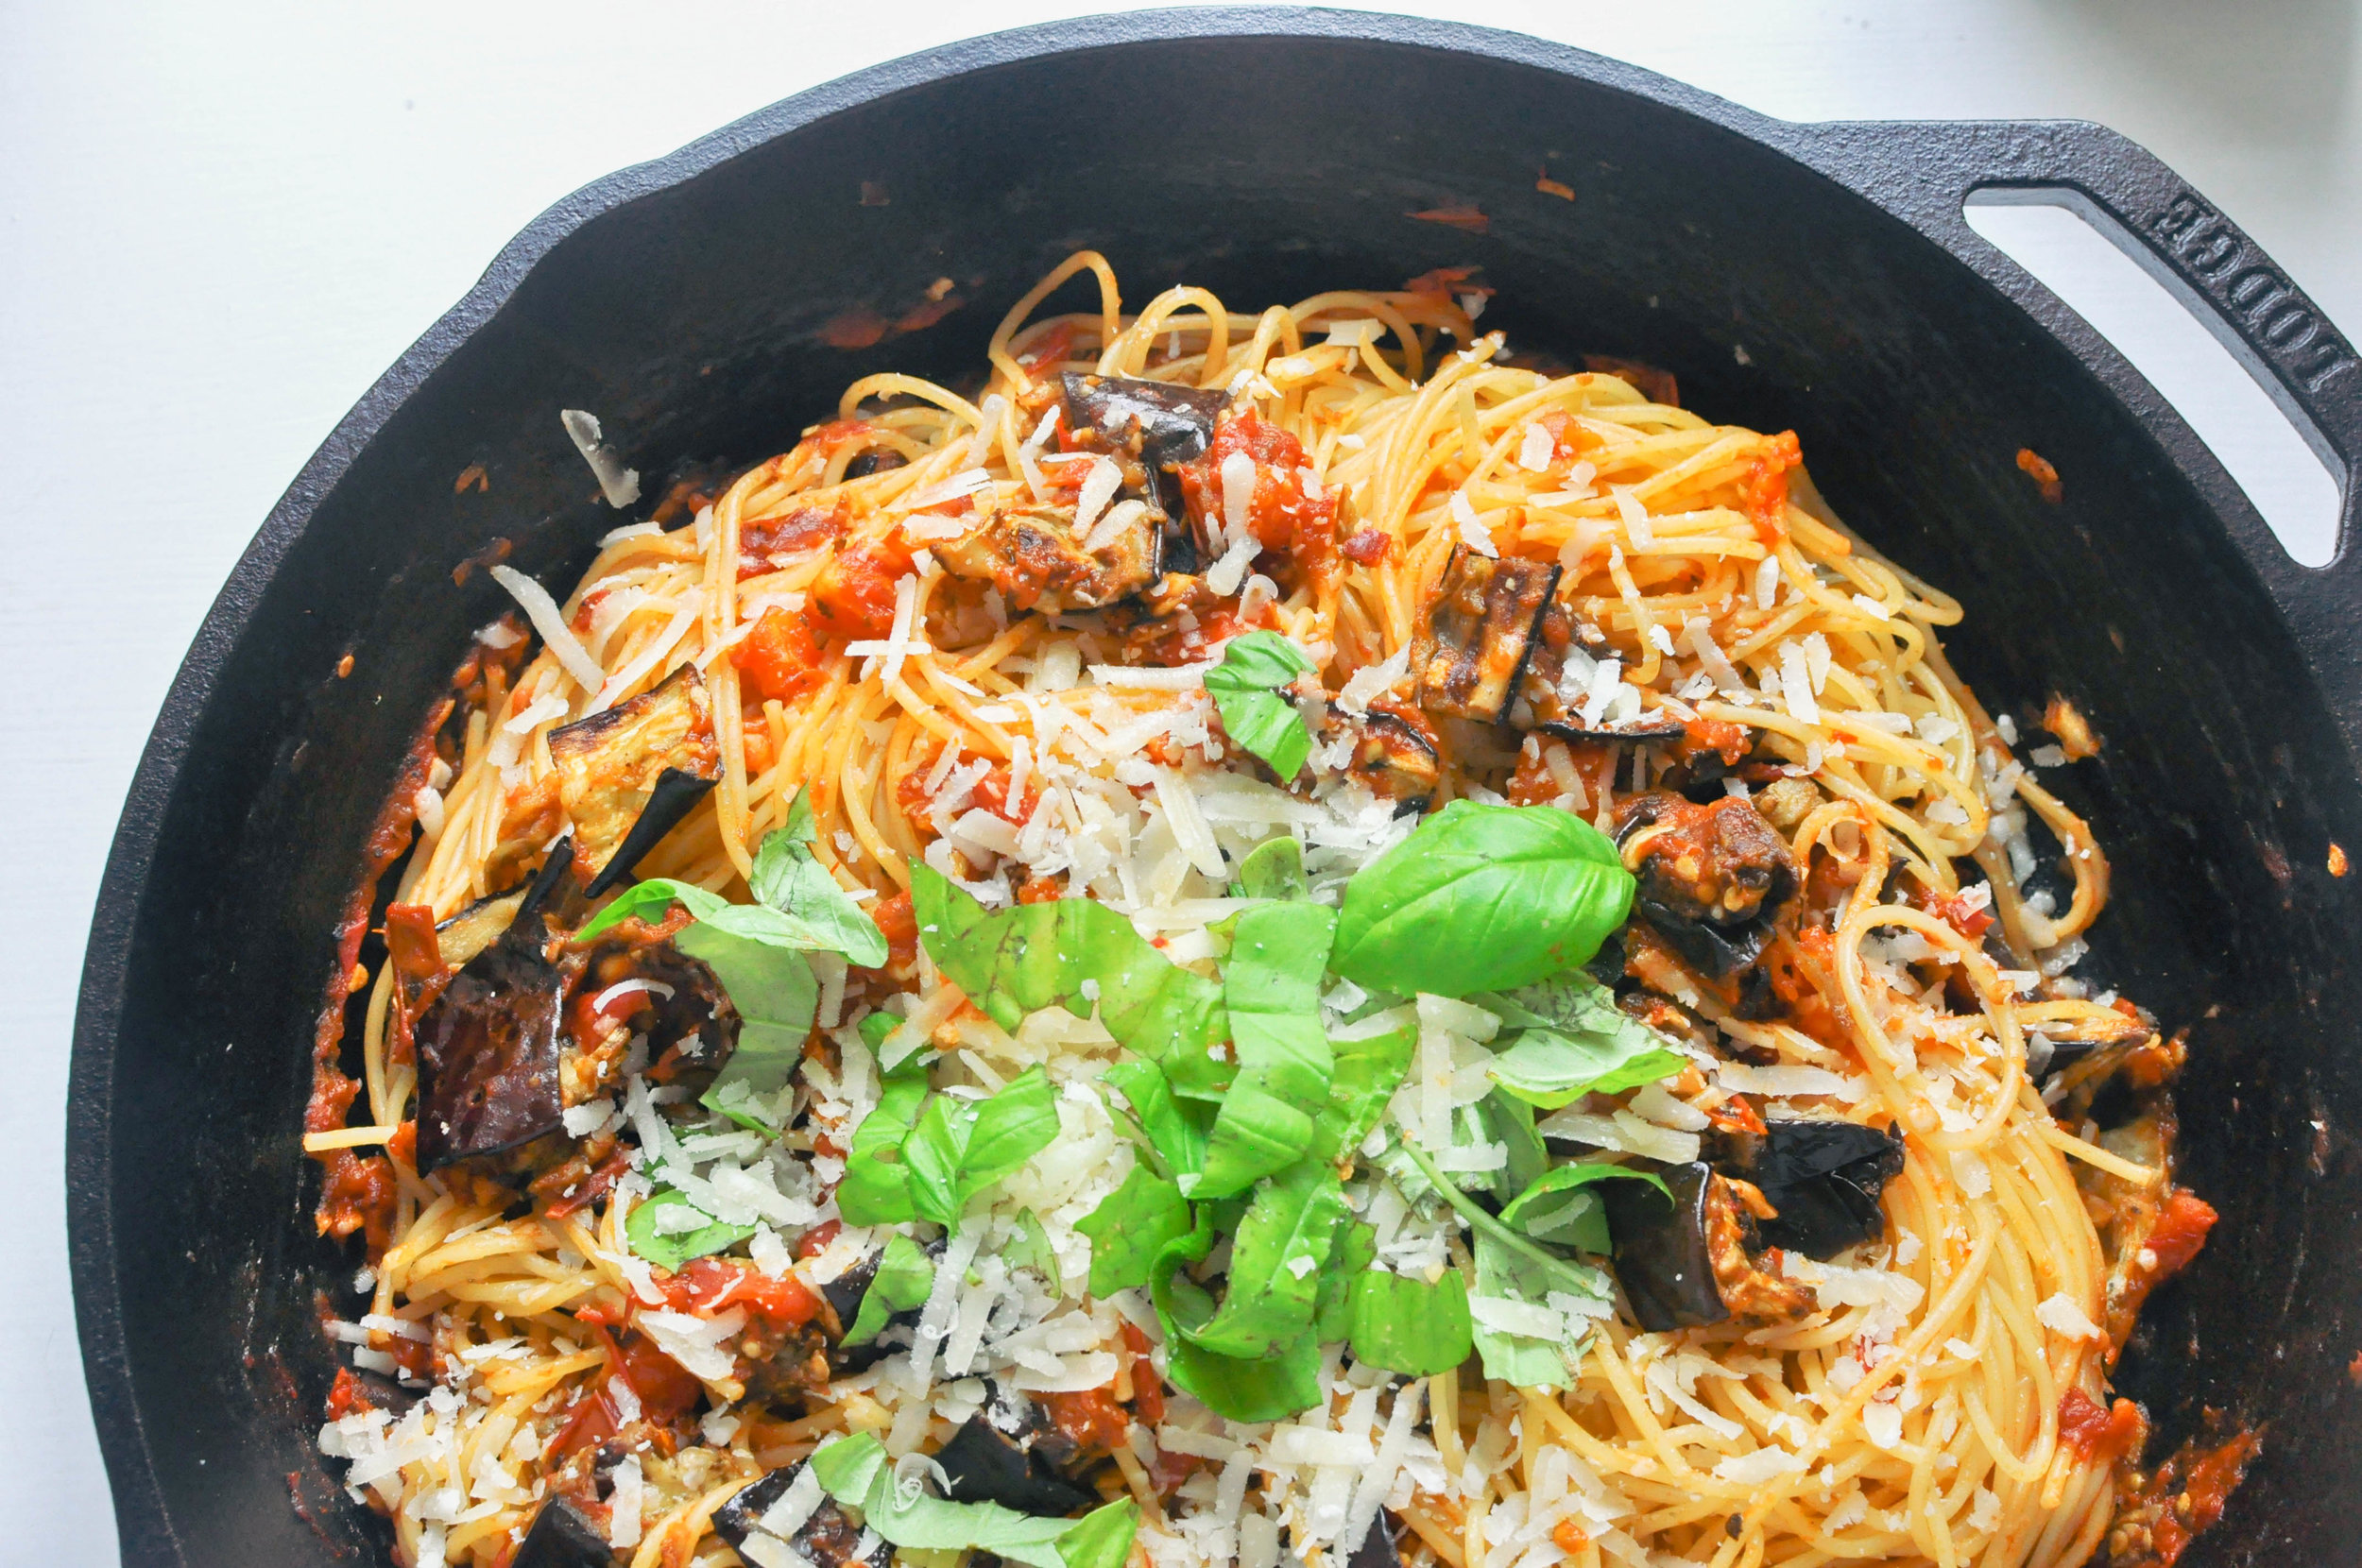 Pasta All Norma - a Sicilian pasta dish with eggplants, tomatoes, cheese and basil. A hearty, vegetarian recipe | This Healthy Table